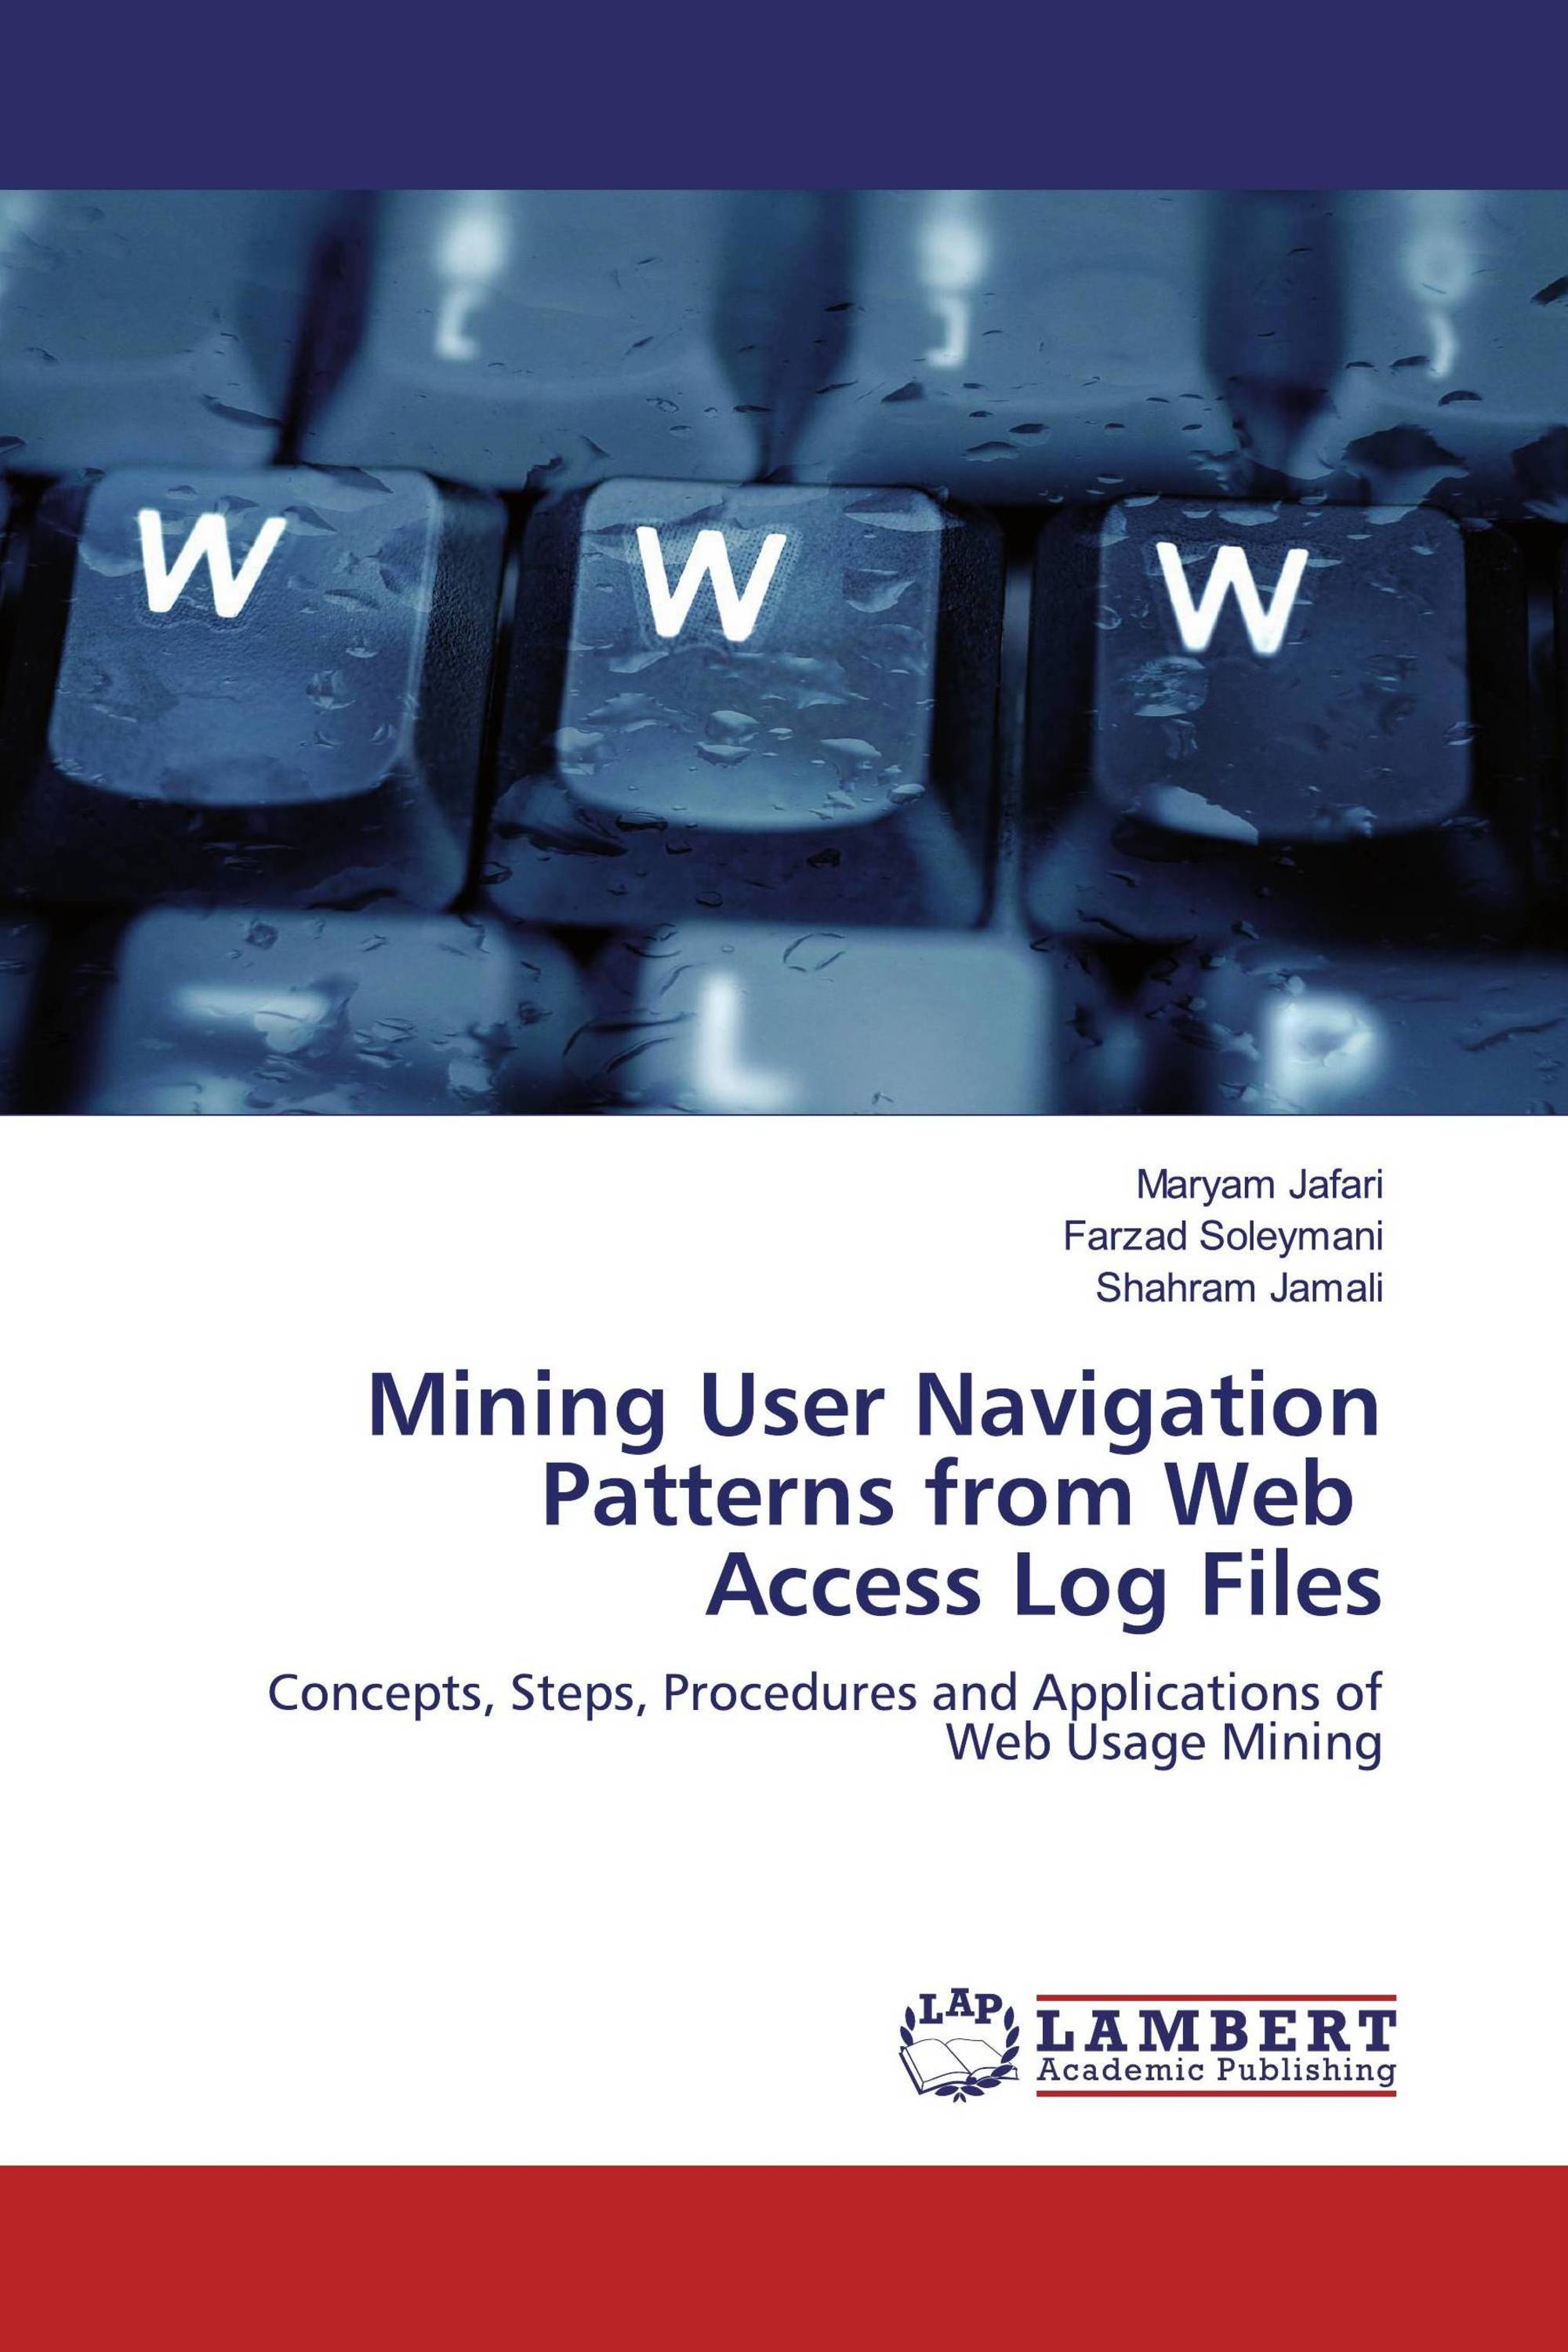 Mining User Navigation Patterns from Web Access Log Files